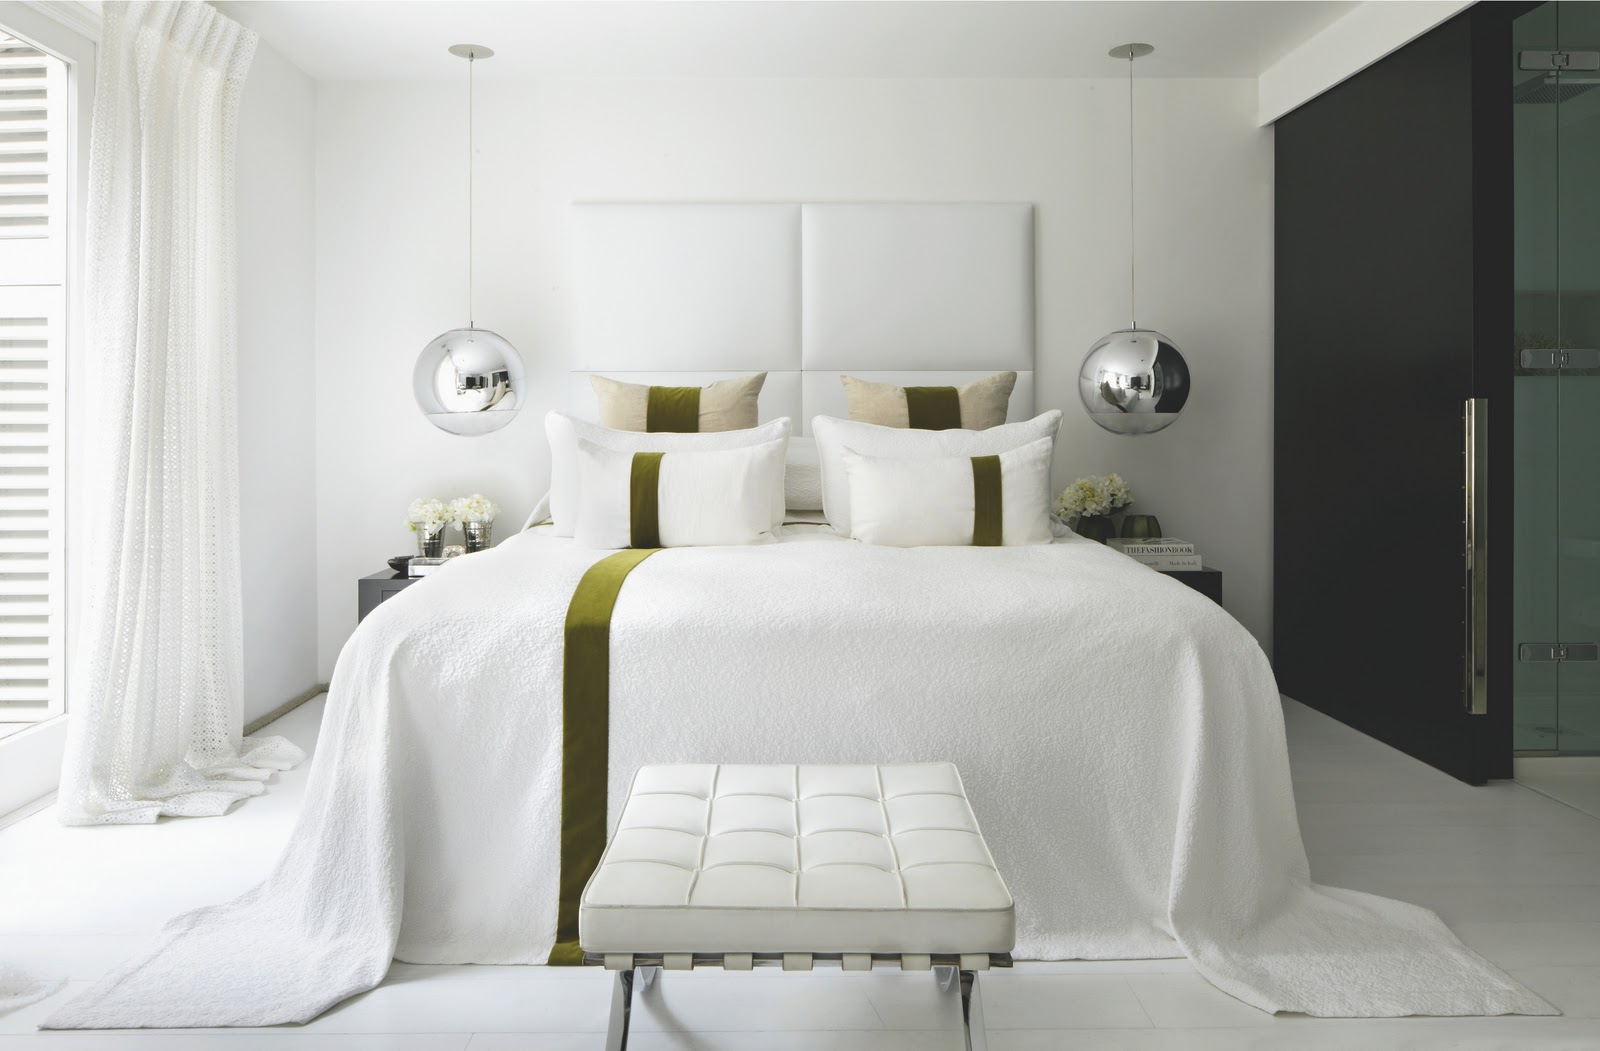 Master Bedroom Inspiring Master Bedroom Ideas By Kelly Hoppen Luxury Drop Down Lighting Fixtures